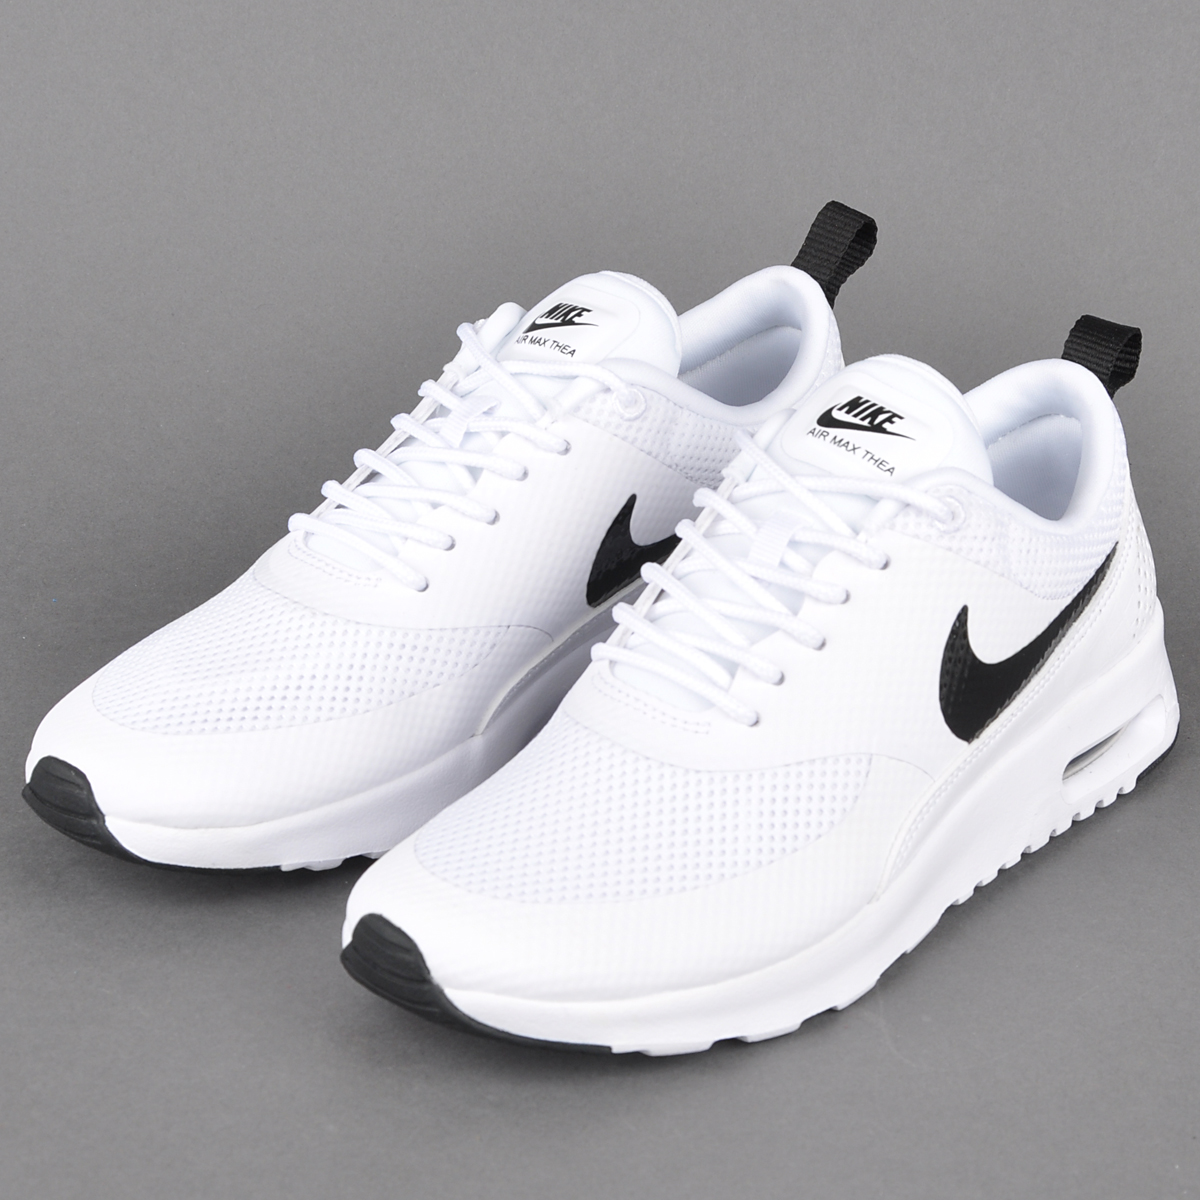 Nike Air Max Thea Ultra Flyknit Women's Shoe. Nike SG